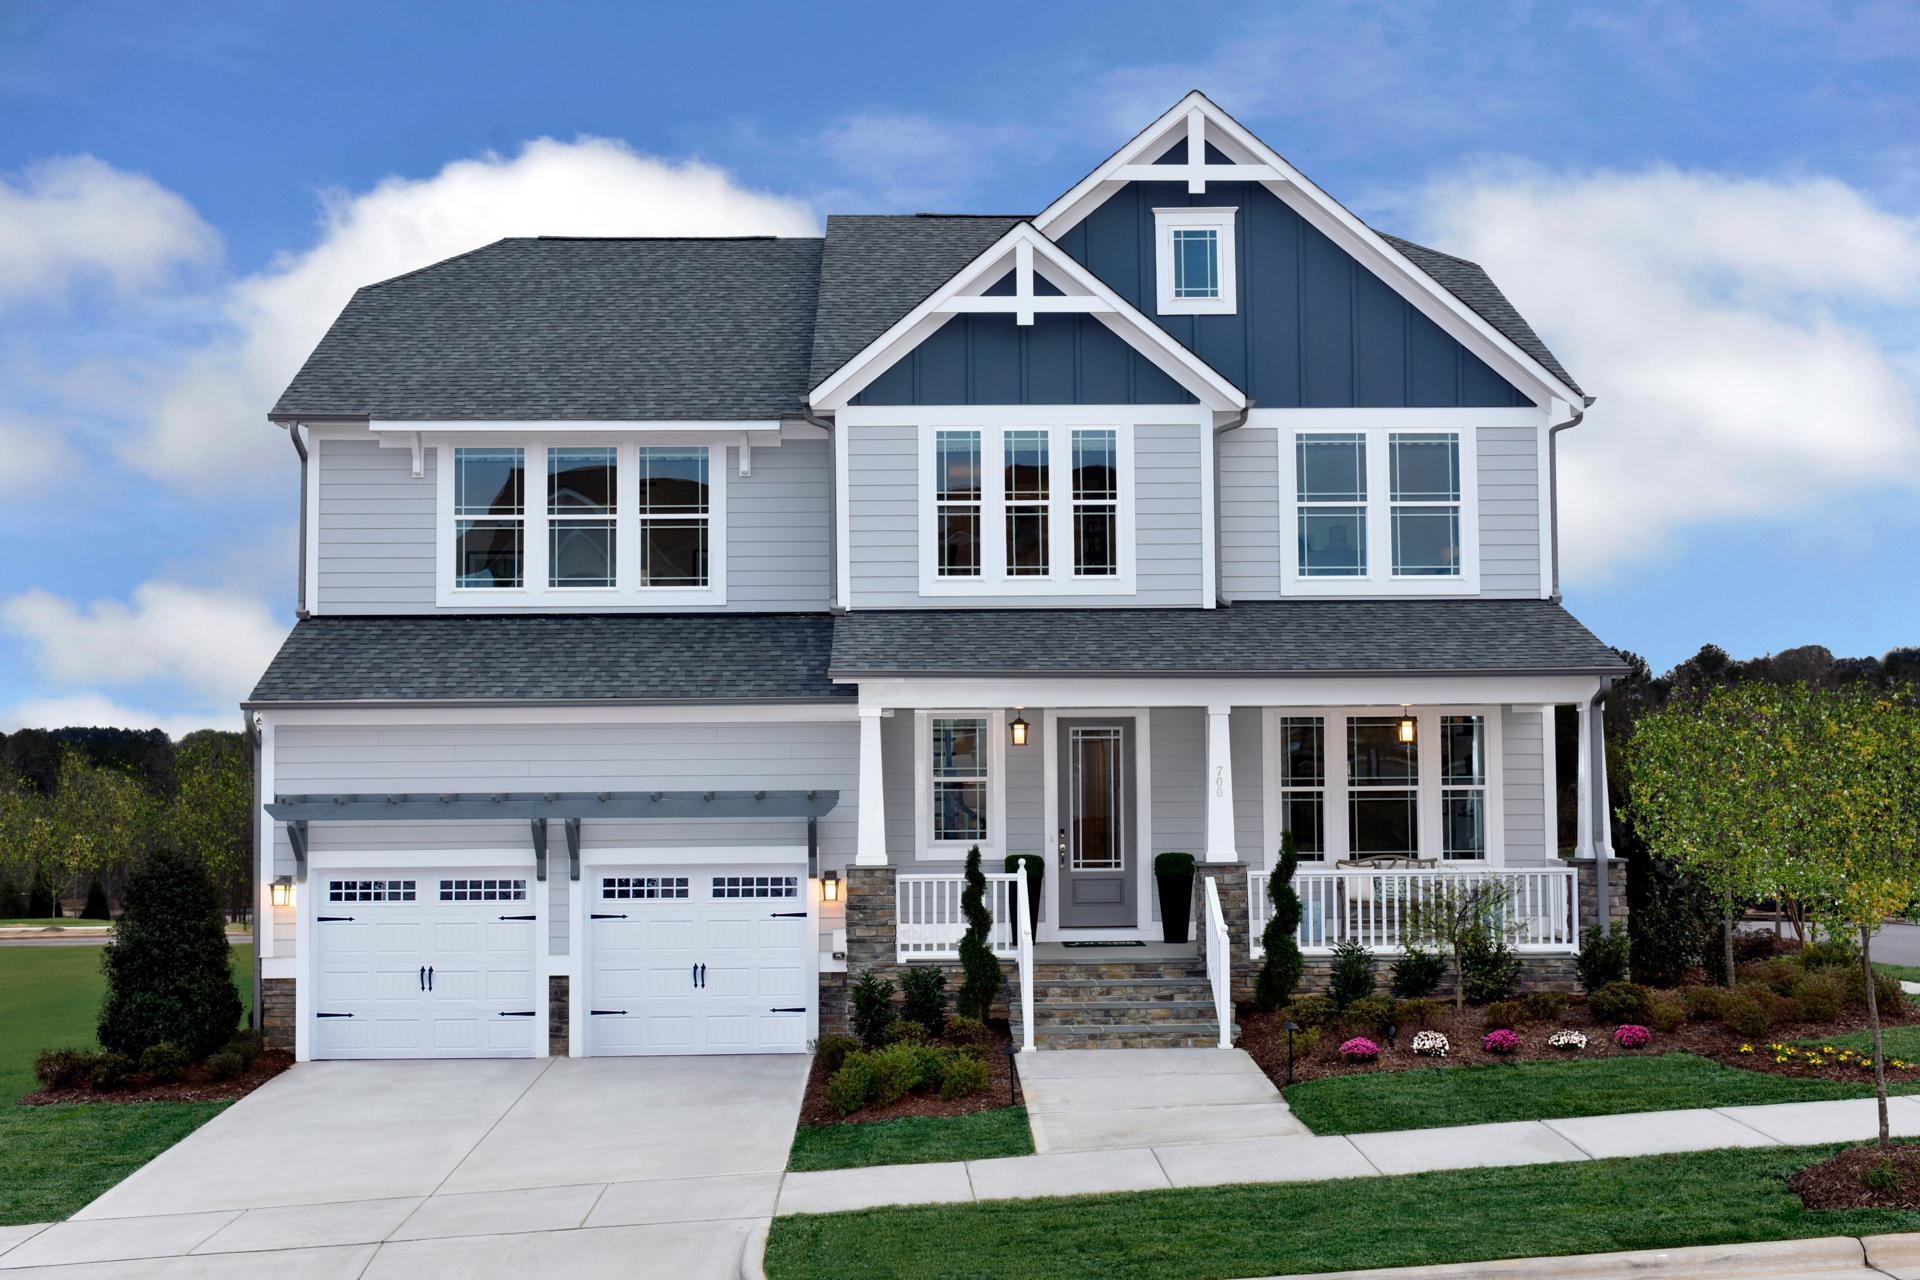 Holding Village by Drees Homes - Alex Gromkov — Quicksilver ... on